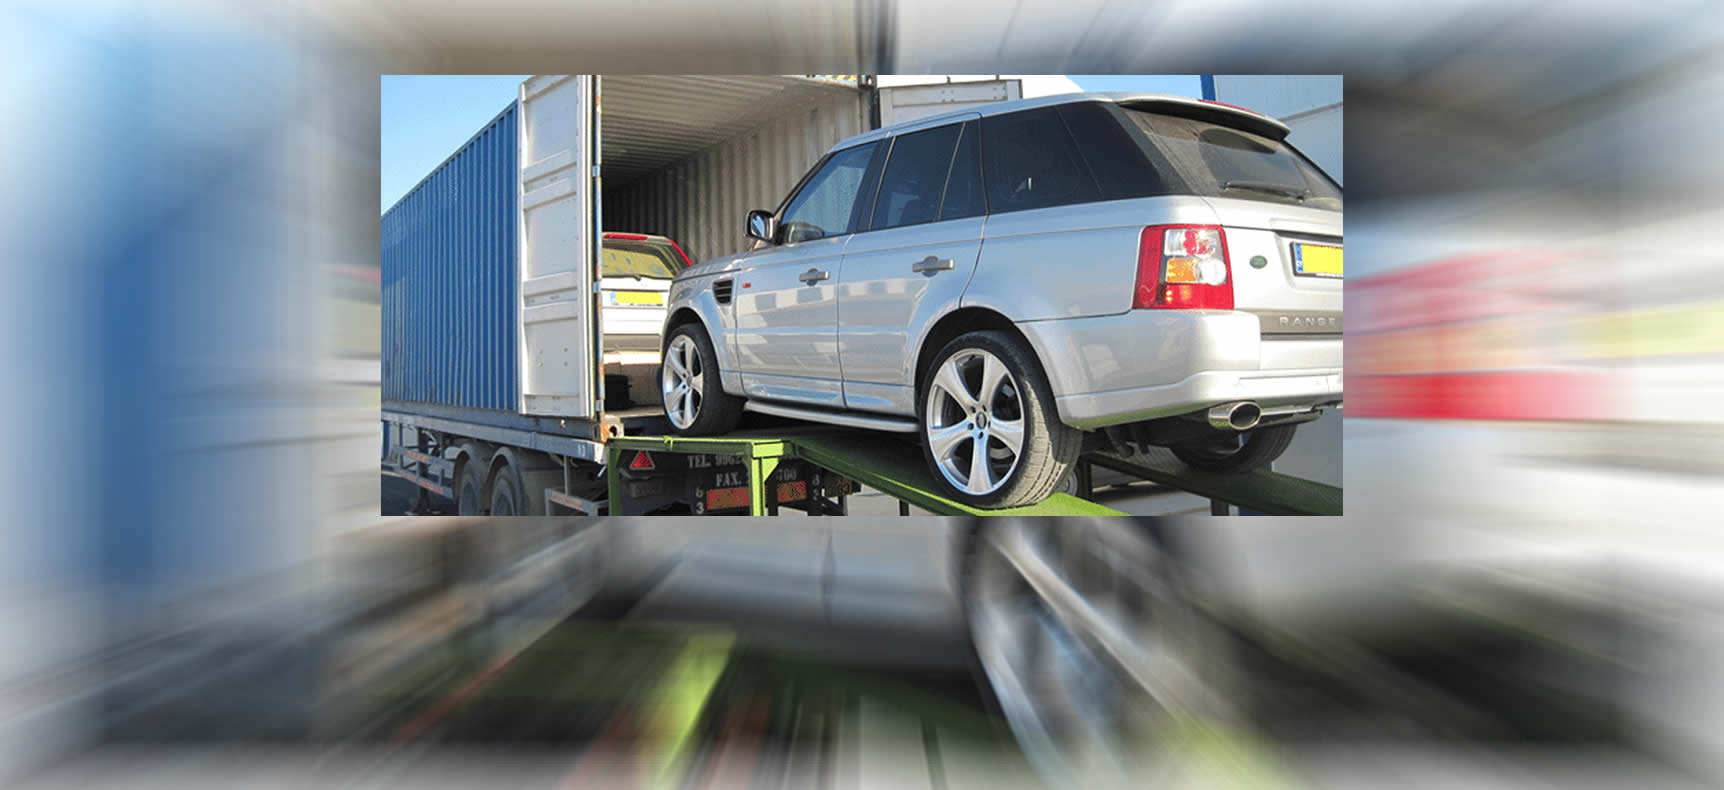 slider-2-car-shipping-3